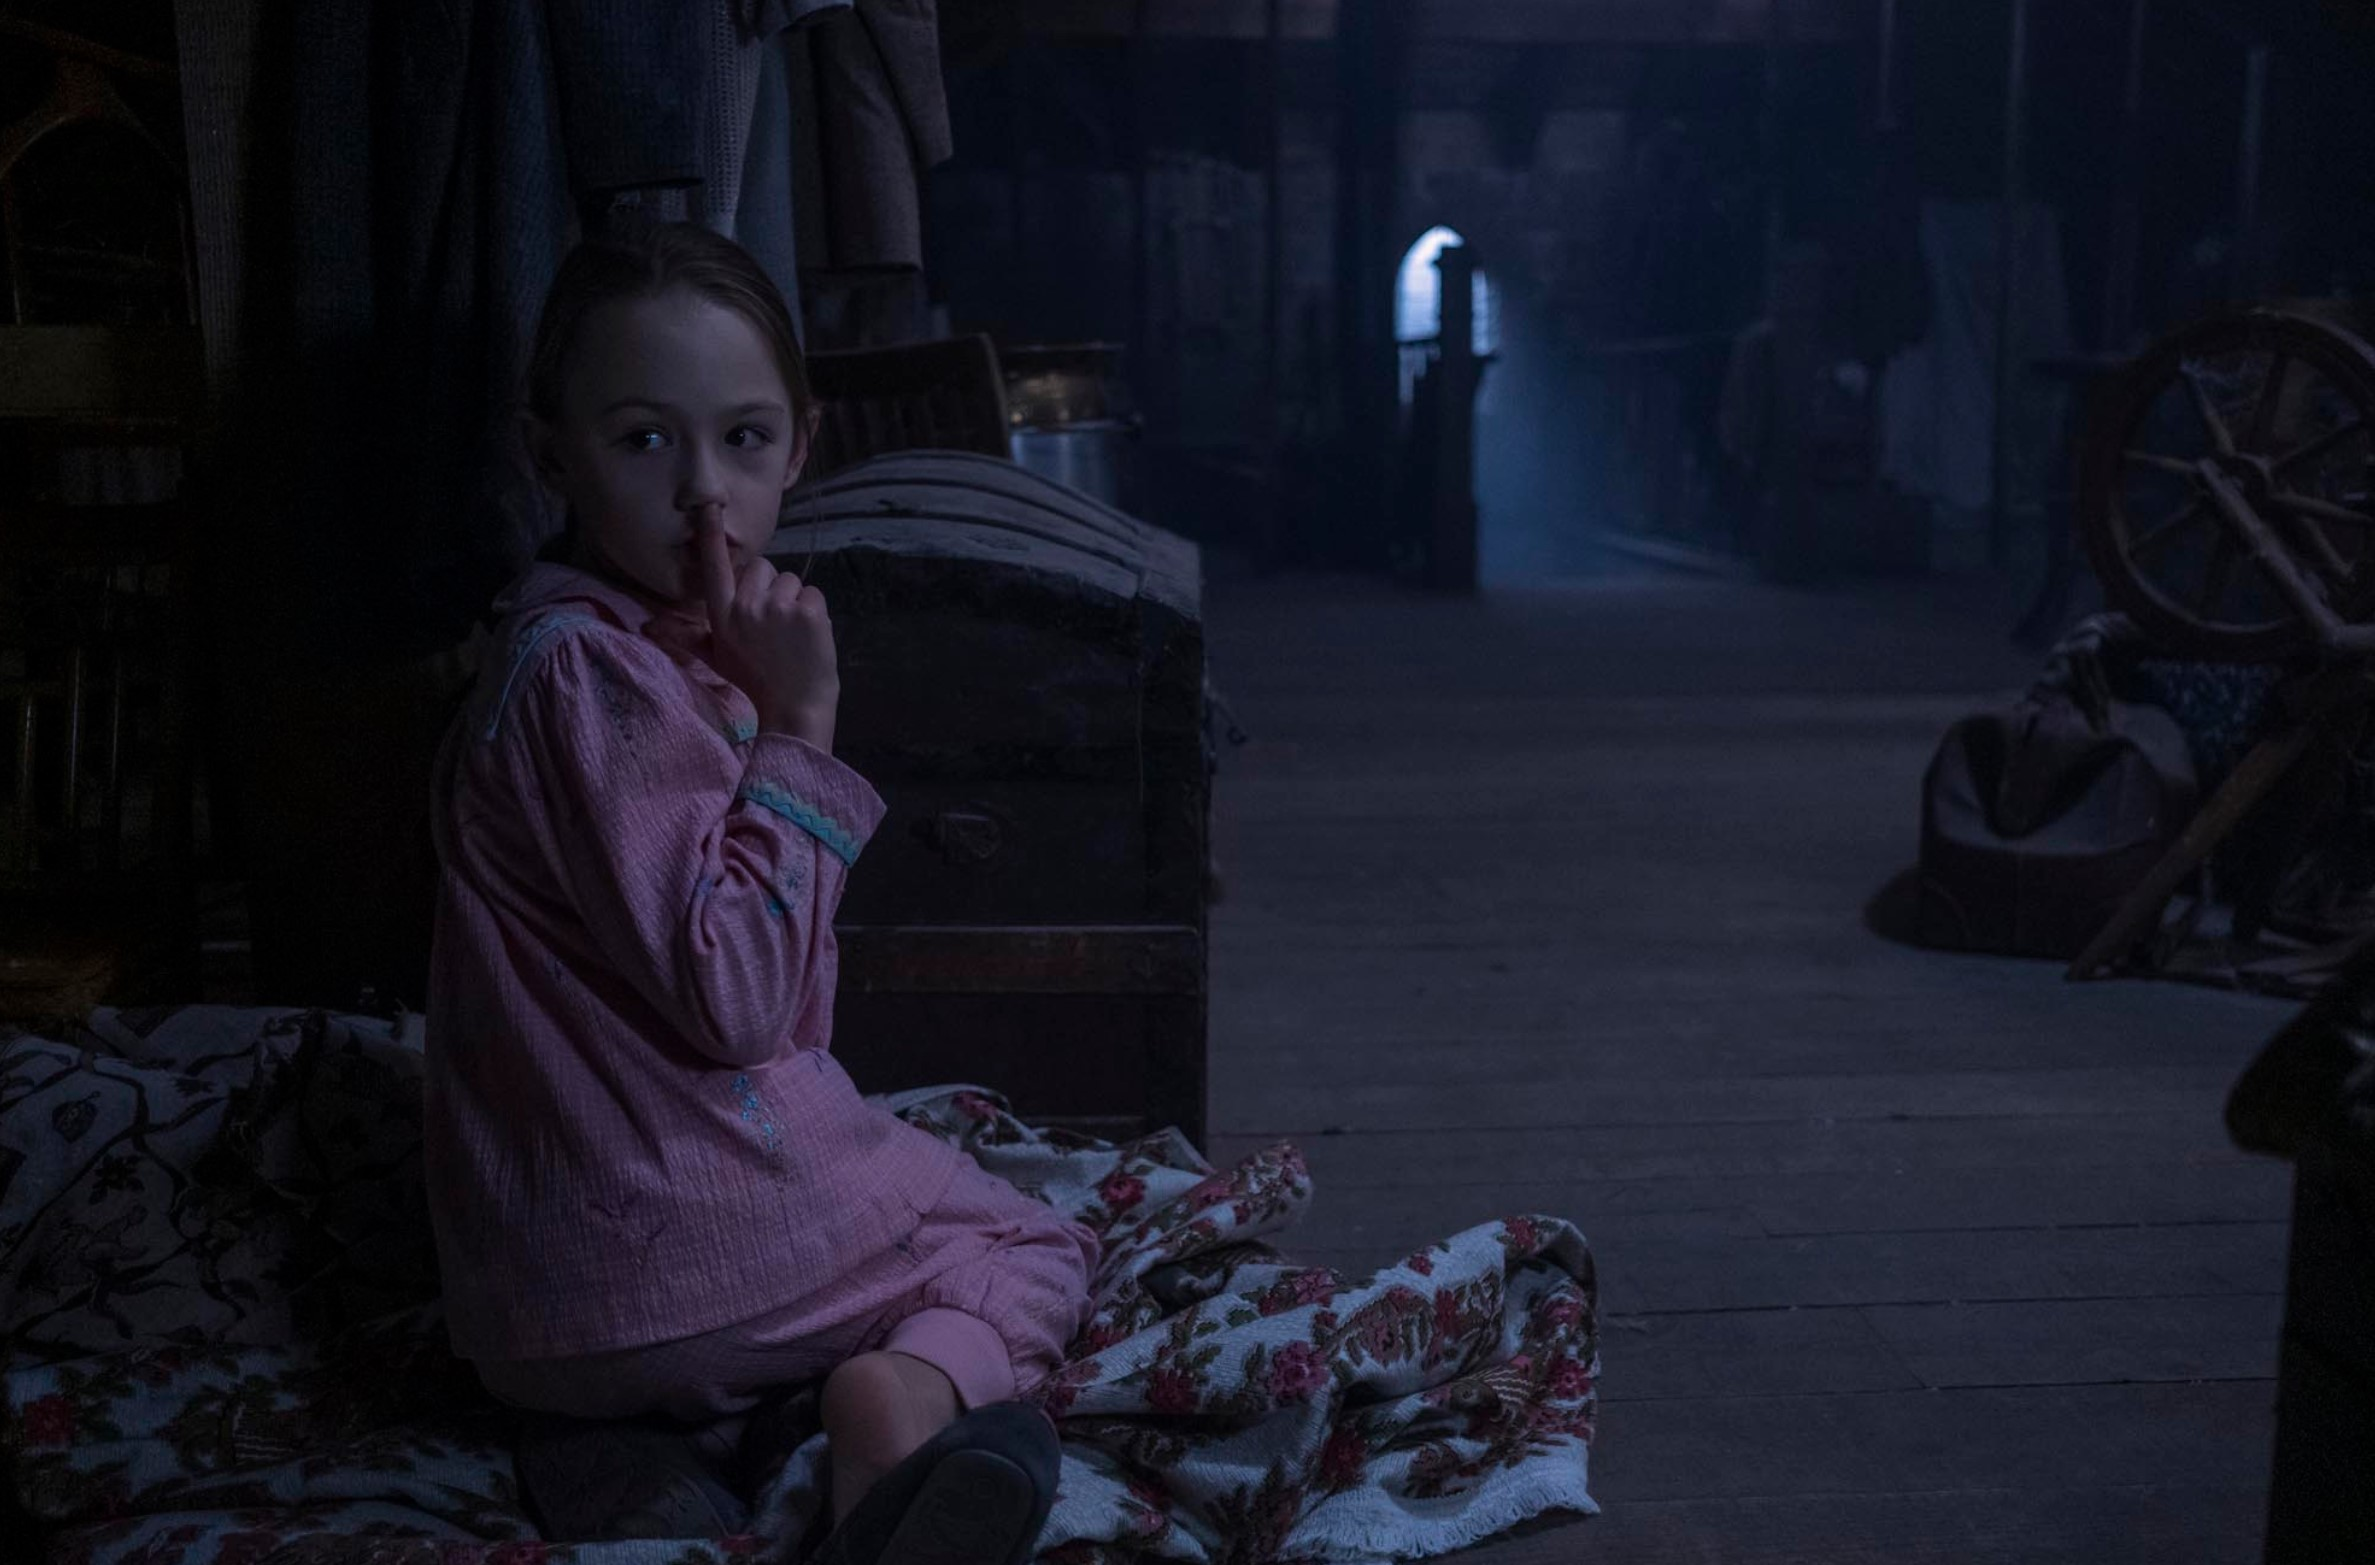 Latest 'Haunting of Bly Manor' Trailer Teases Even More Scares